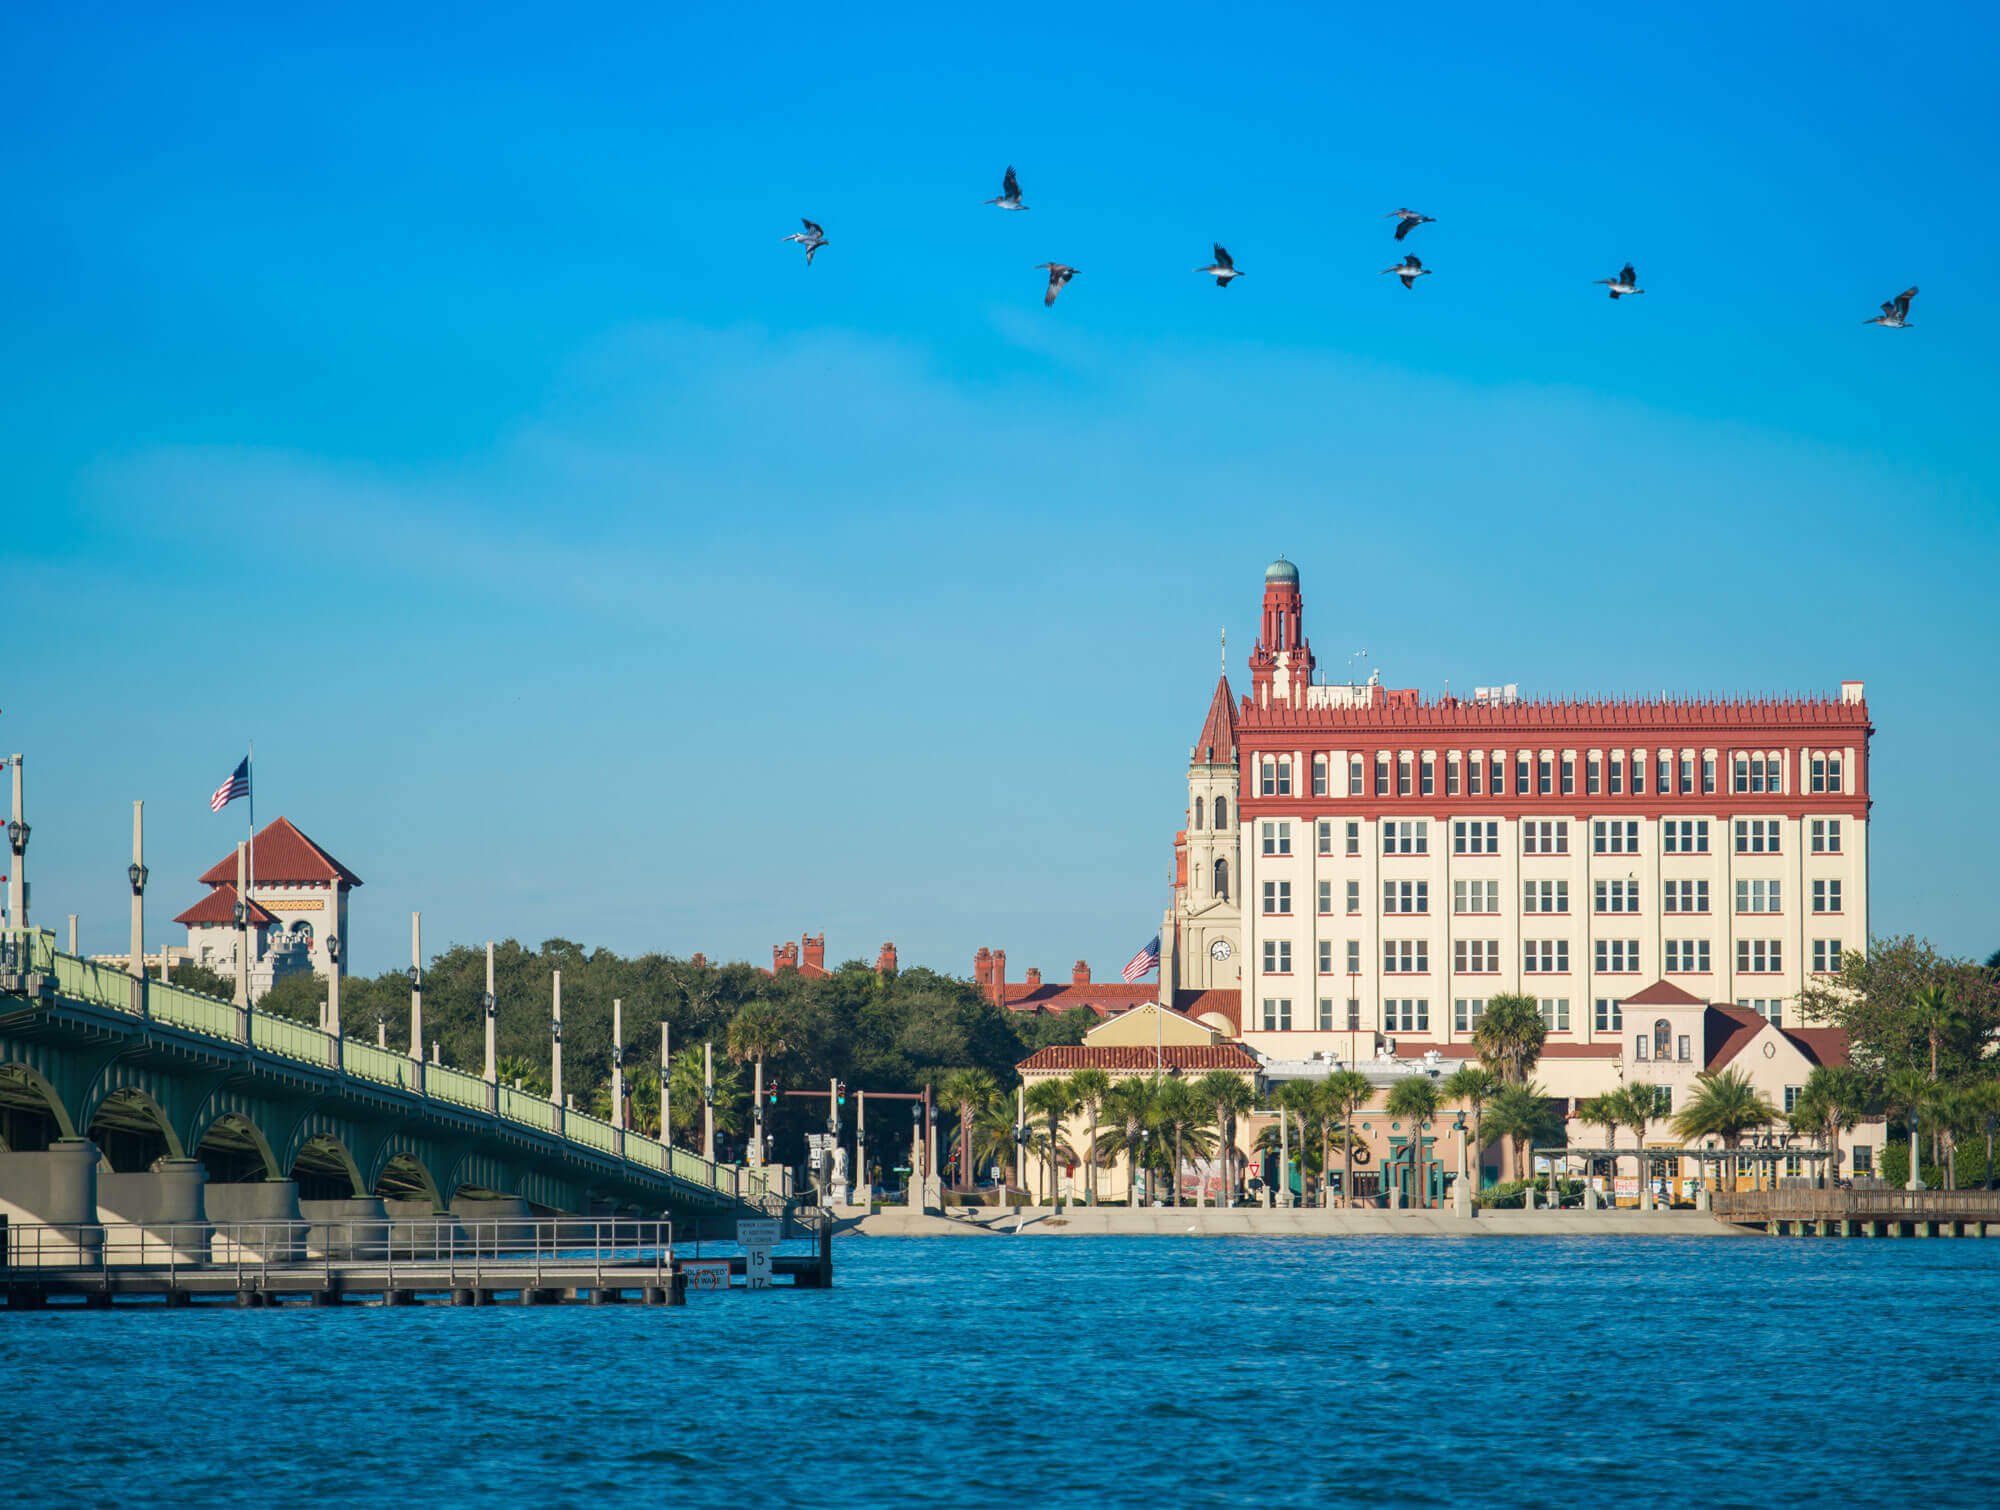 A view of St. Augustine from the Intercoastal Waterway of a large, old hotel in the center, the Bridge of the Lions off to the left and birds flying above